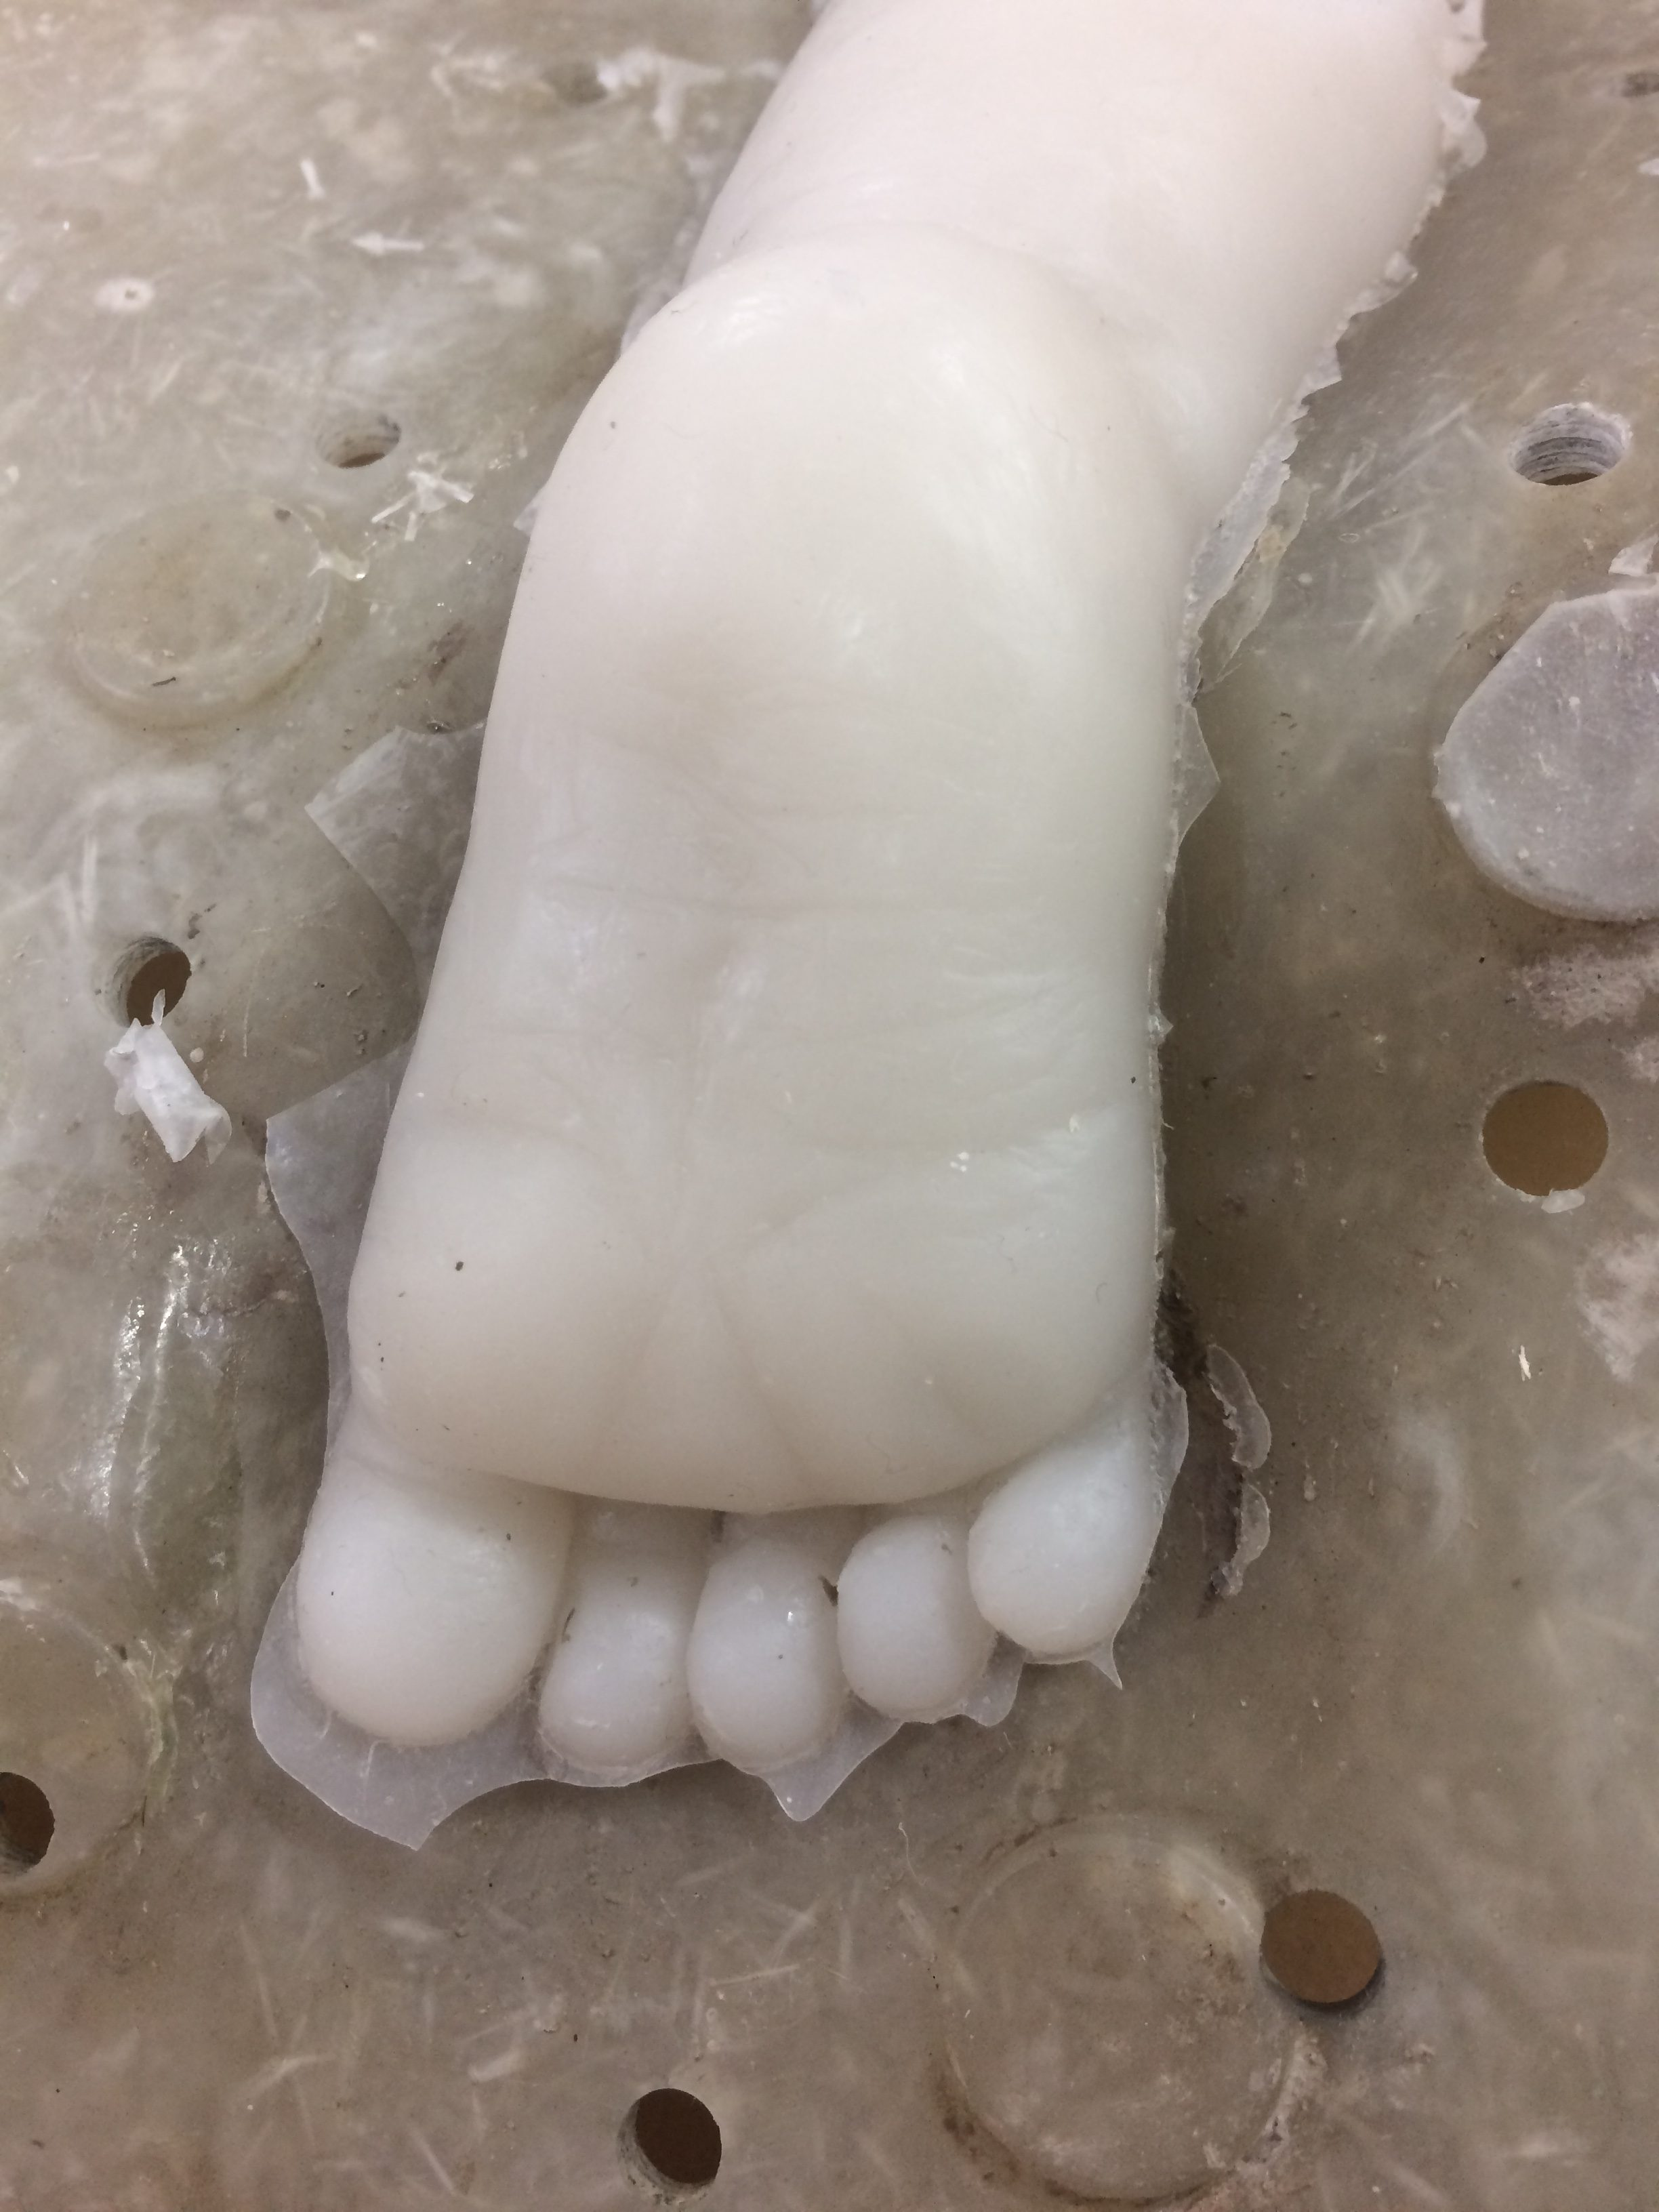 Silicone cast foot close-up detail